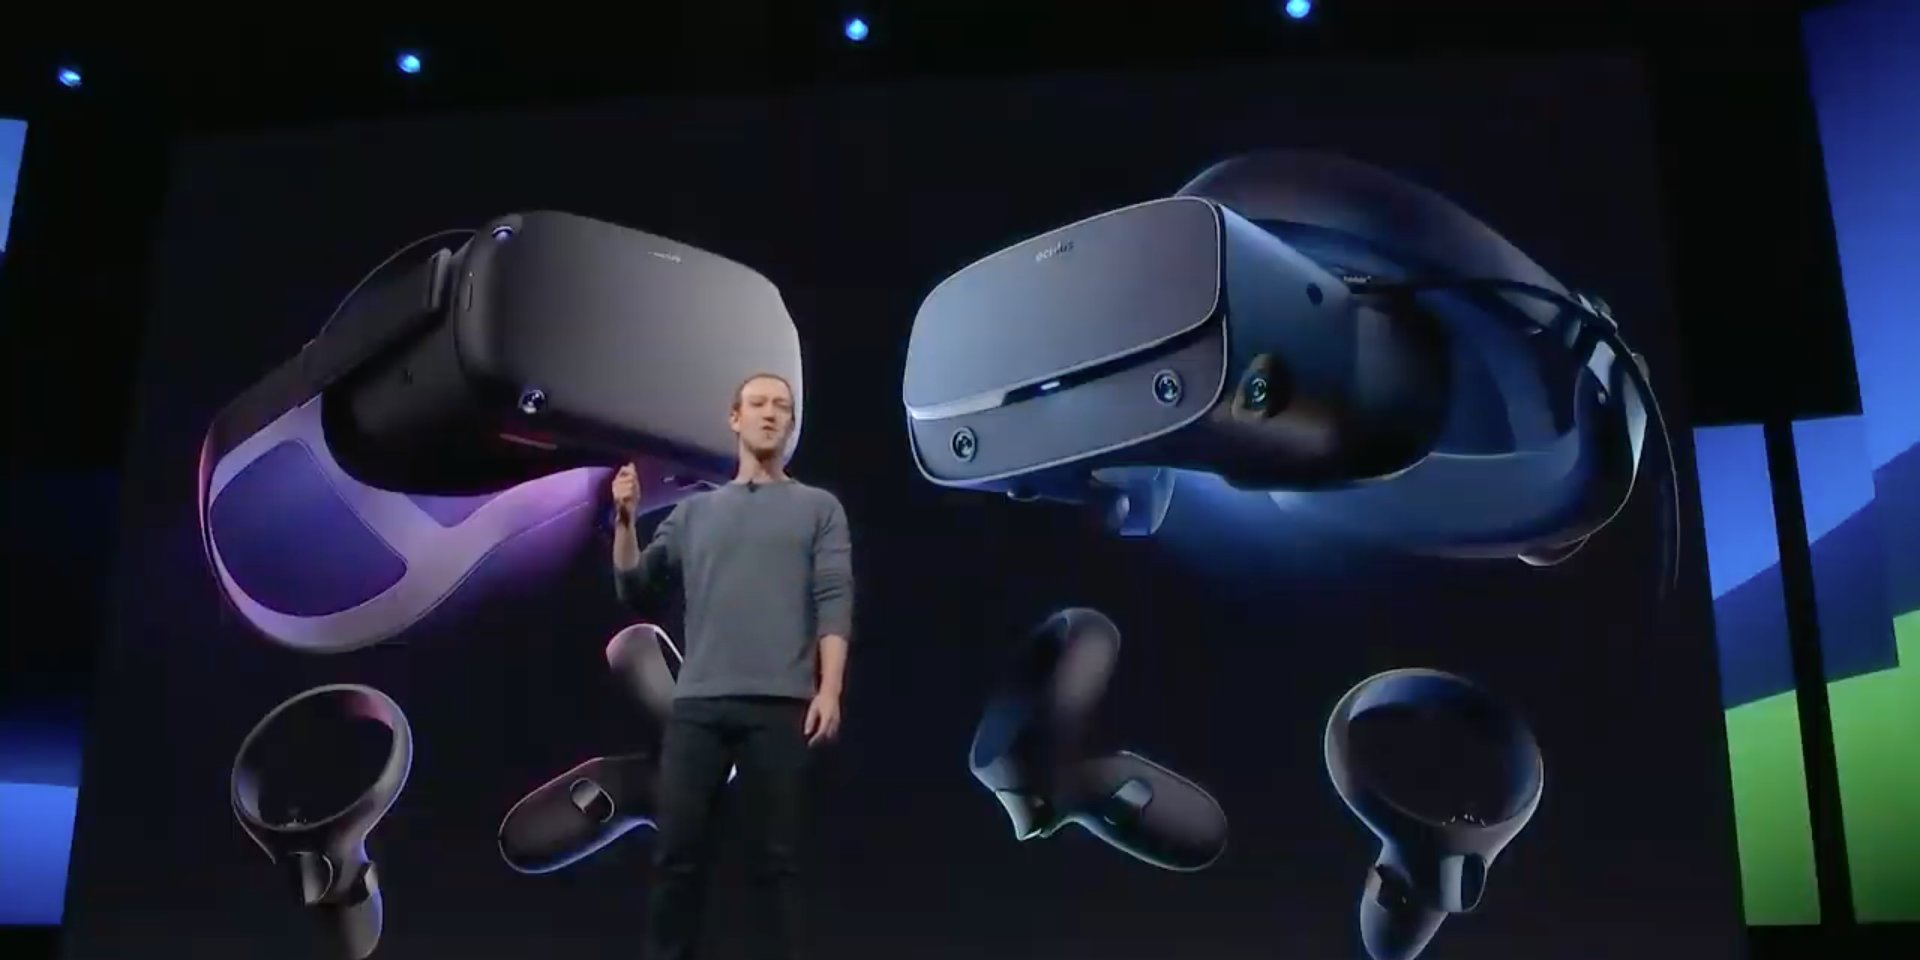 Facebook is boosting its commitment to gaming by advancing its Oculus VR headsets